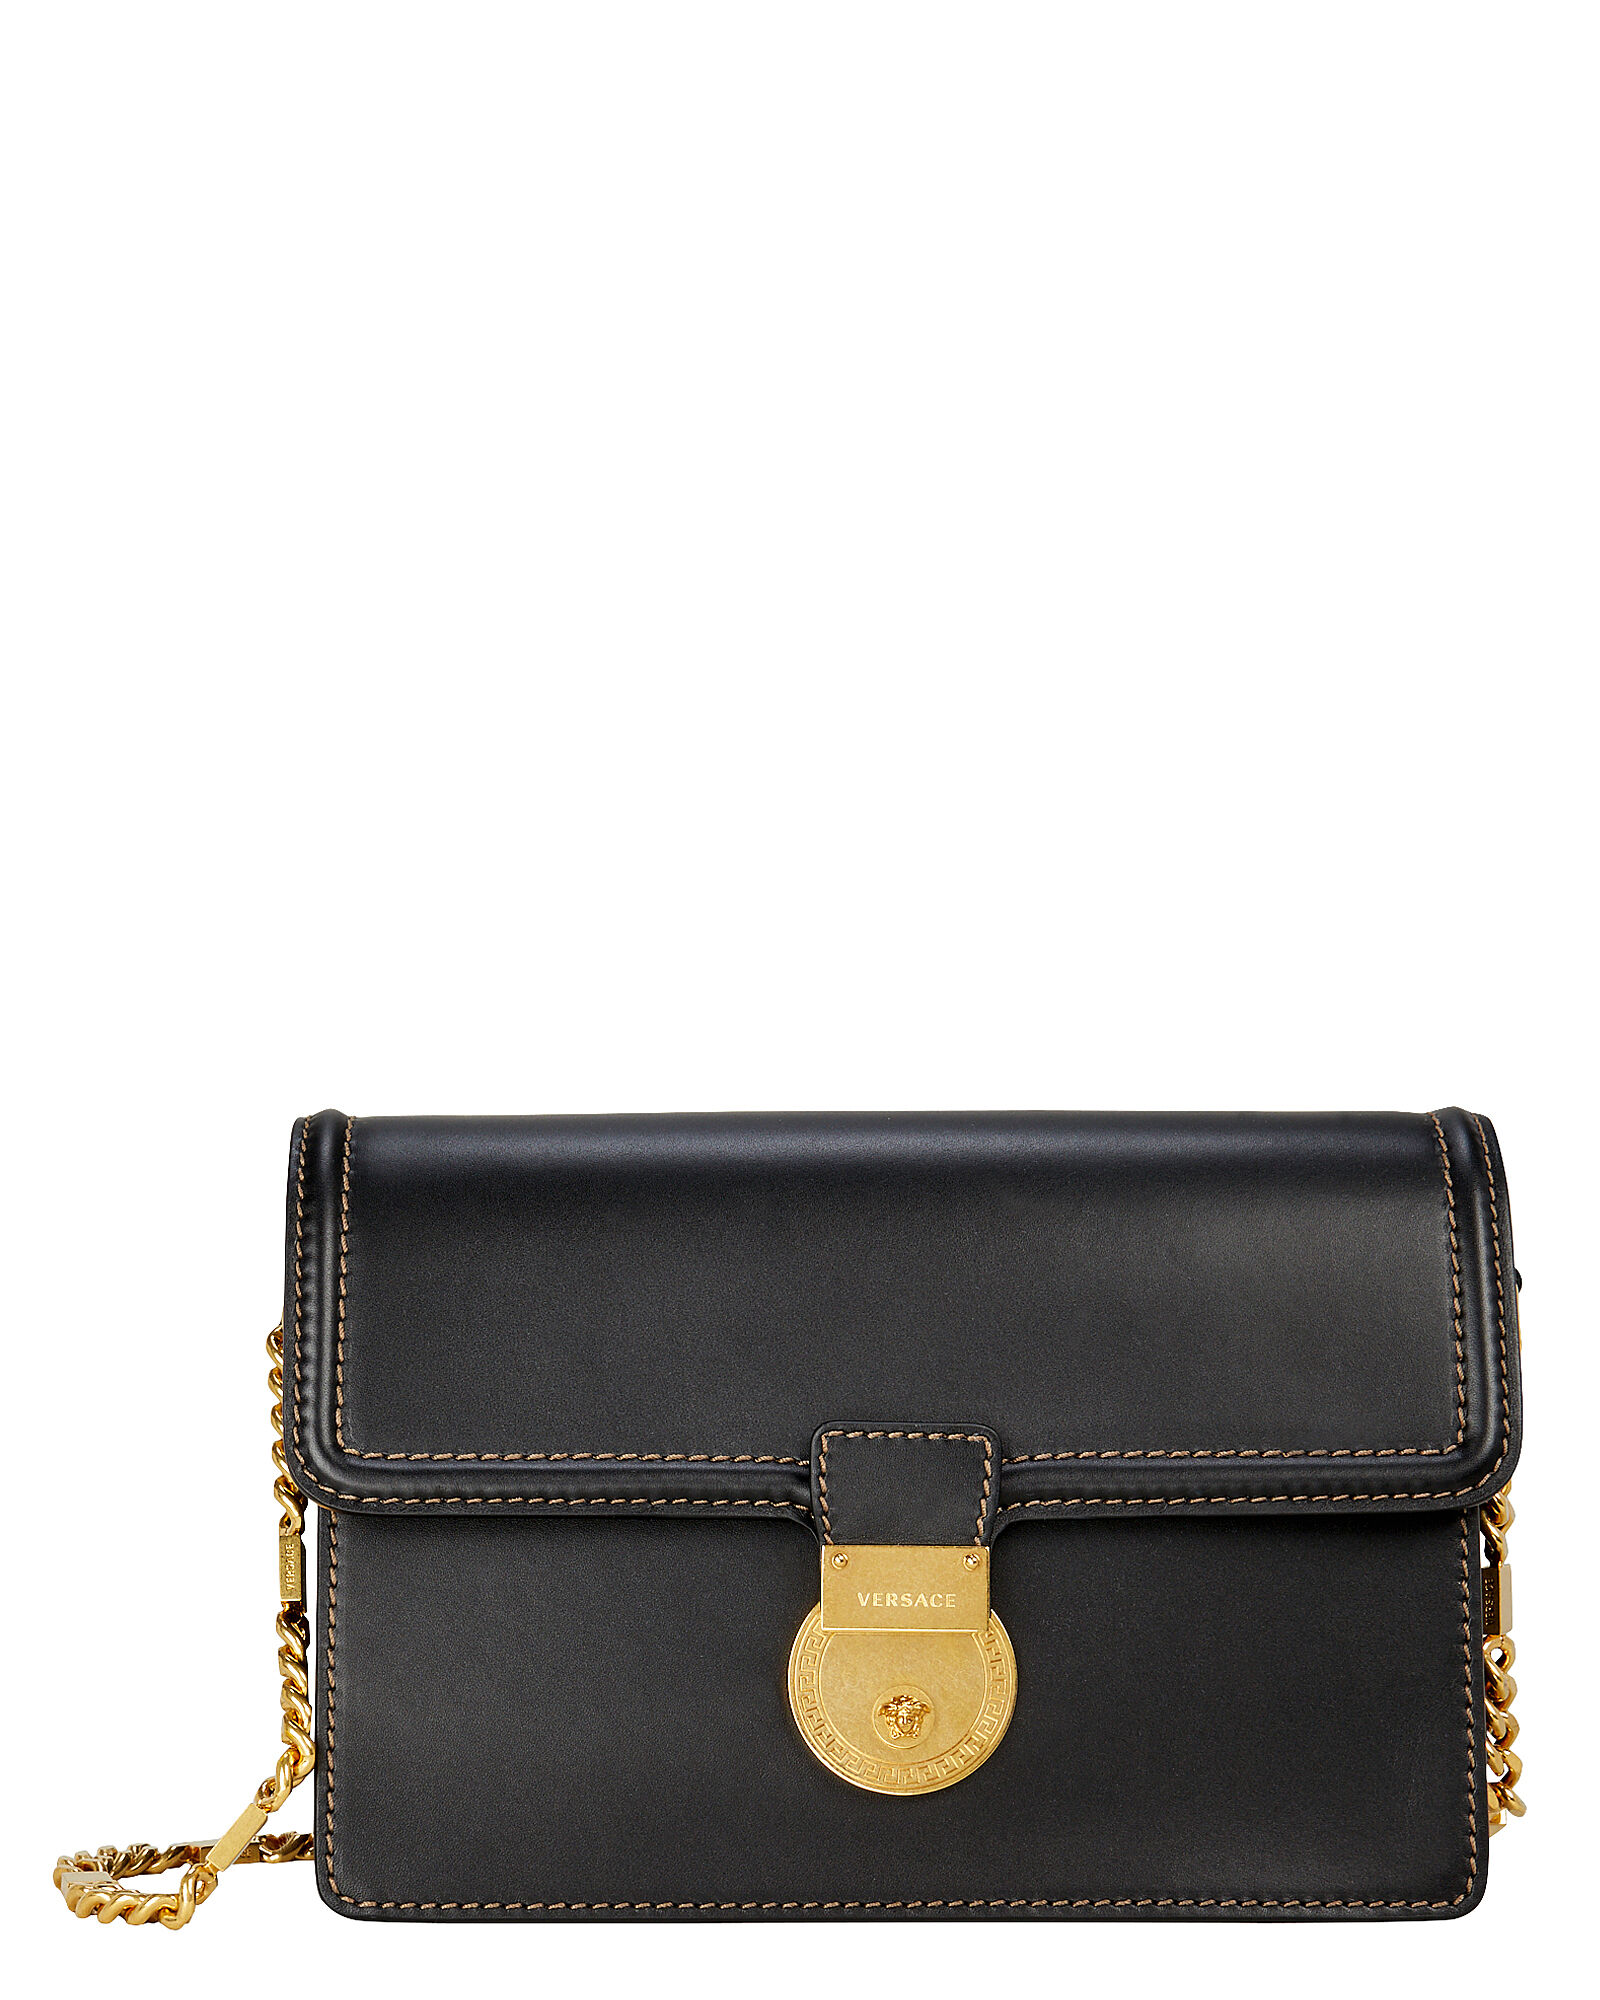 Chain Strap Leather Crossbody, BLACK, hi-res